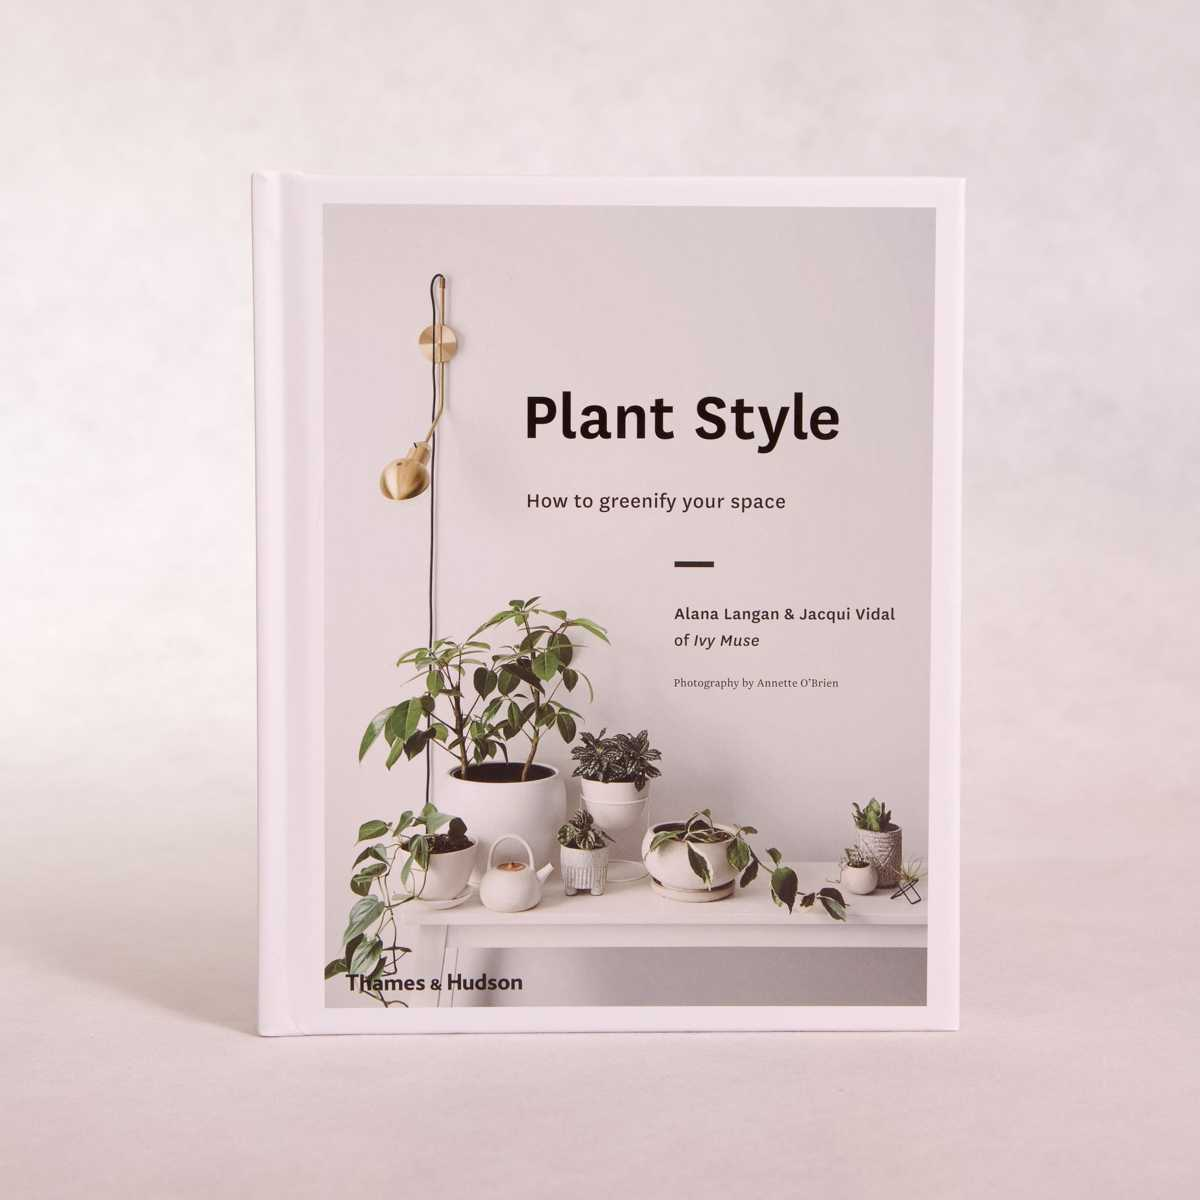 Plant Style | By Alana Langan & Jacqui Vidal - Book - Throw Some Seeds - Australian gardening gifts and eco products online!